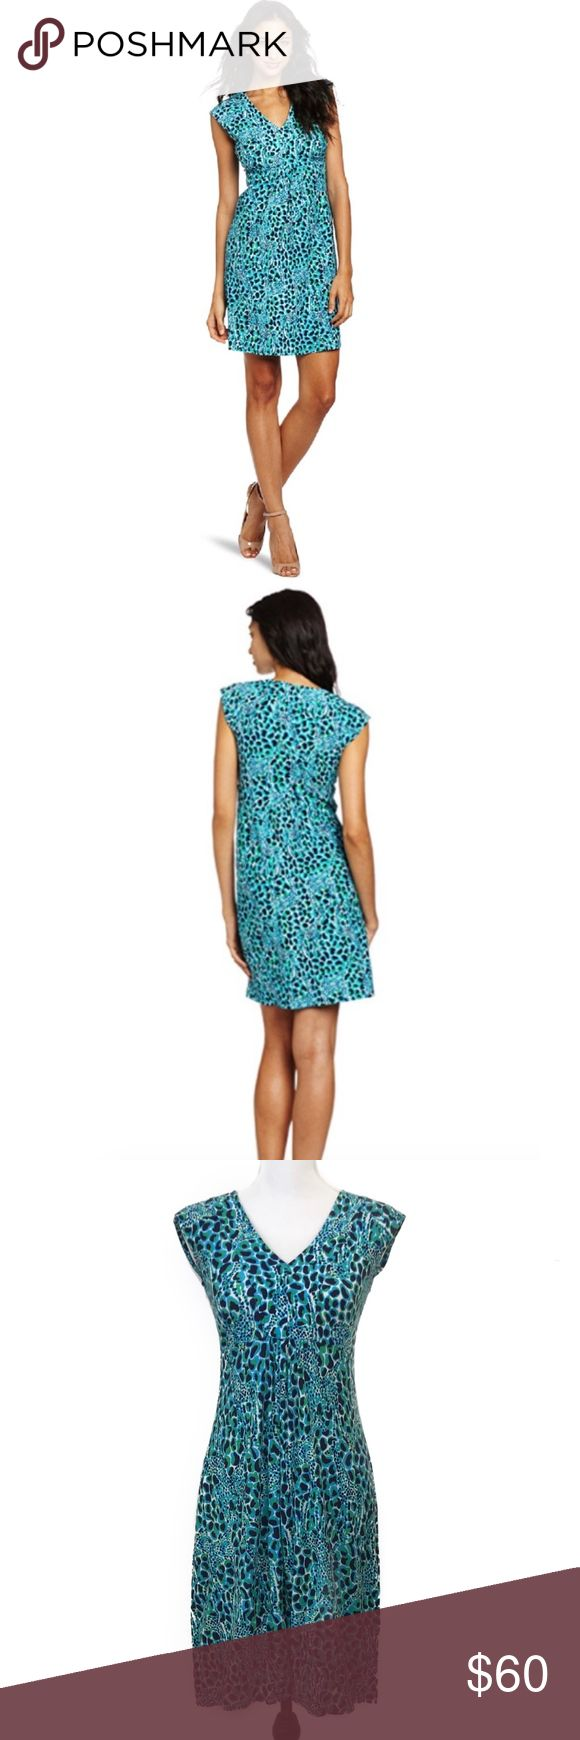 """Lilly Pulitzer Cyan Blue Gigi Print Garnet Dress Slubby cotton makes this dress the perfect transitional piece. Short Sleeve Printed V-Neck Dress. 100% Cotton. Blue and green giraffe print with """"hidden"""" giraffes throughout.  *All measurements are approximate*  Length: 35.5"""" Bust: 16"""" laying flat Waist: 14"""" laying flat Lilly Pulitzer Dresses"""